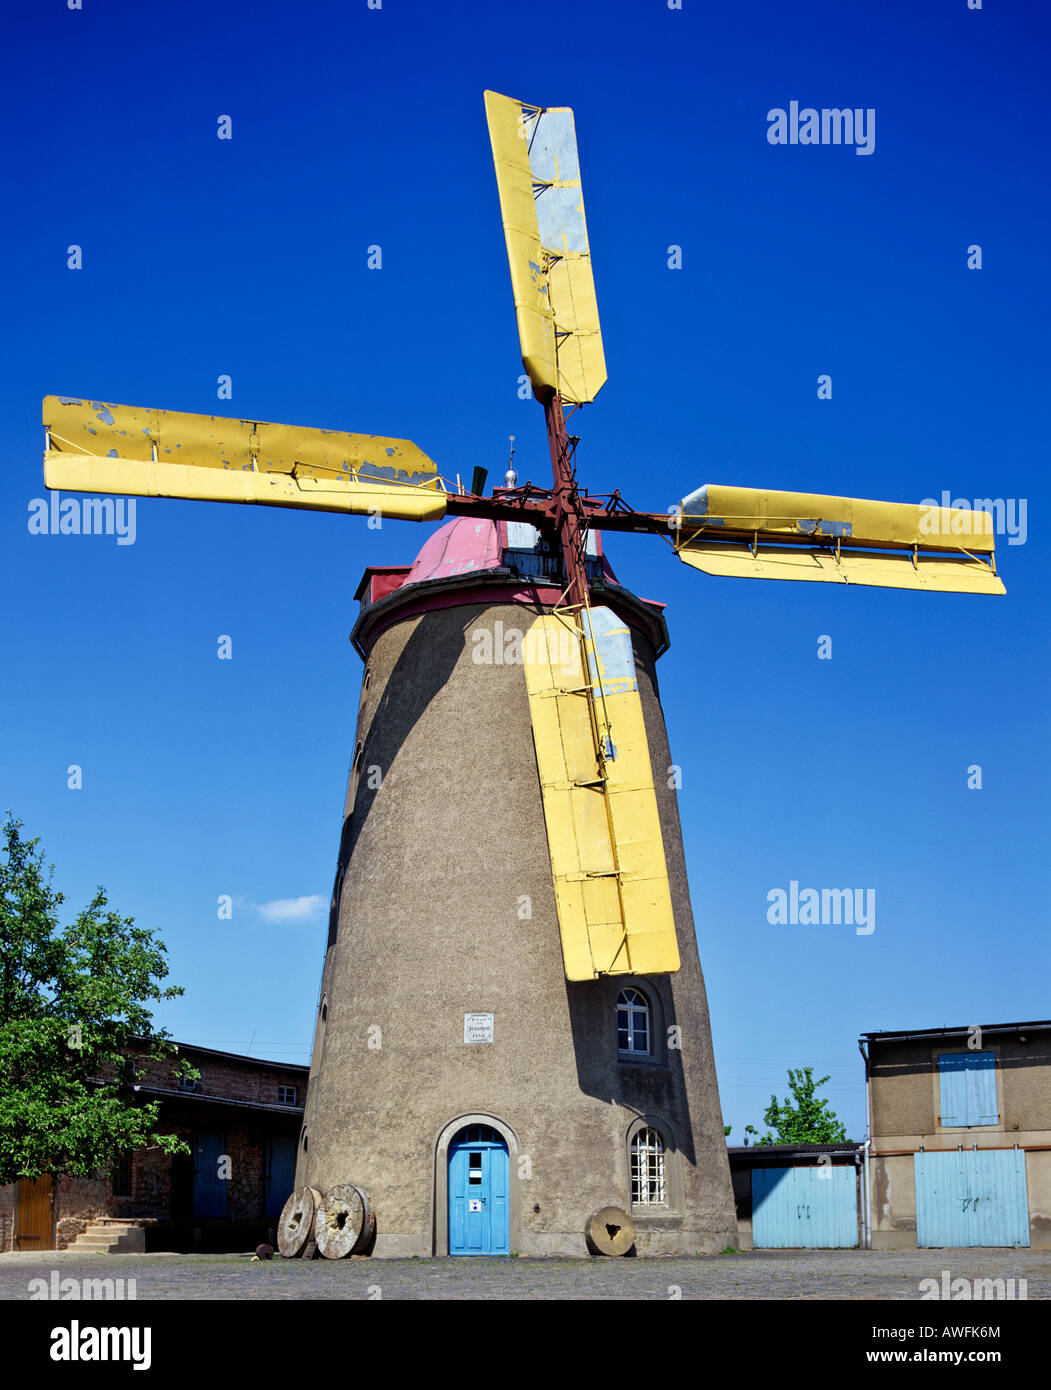 Windmill in Saxony, Germany, Europe - Stock Image